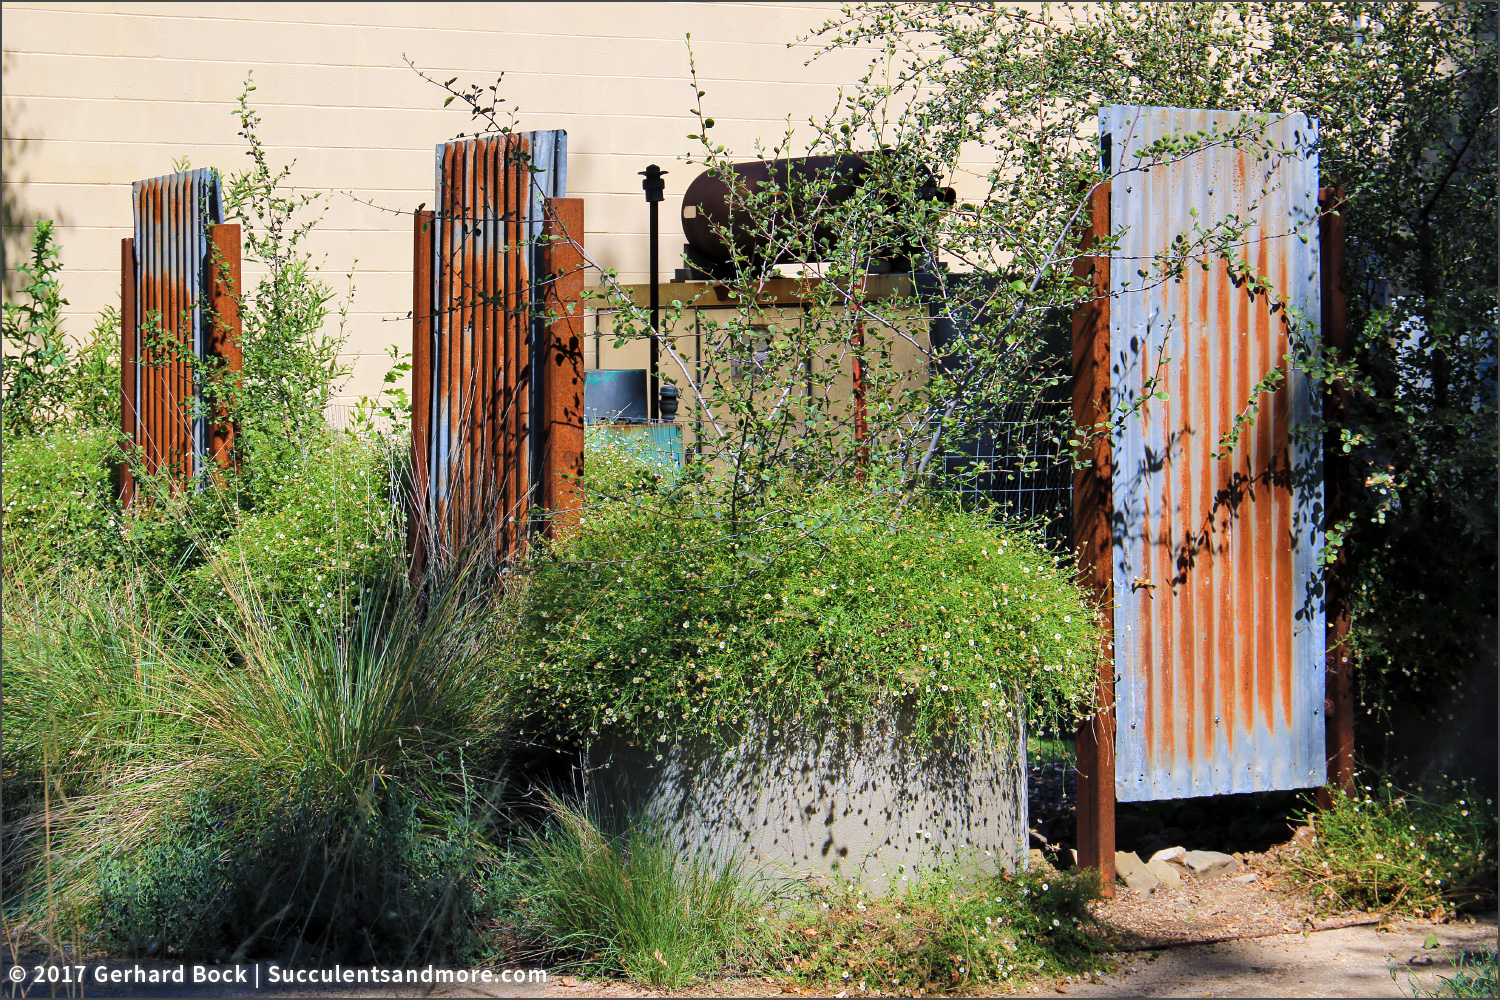 succulents and more: summer vignettes from the uc davis arboretum